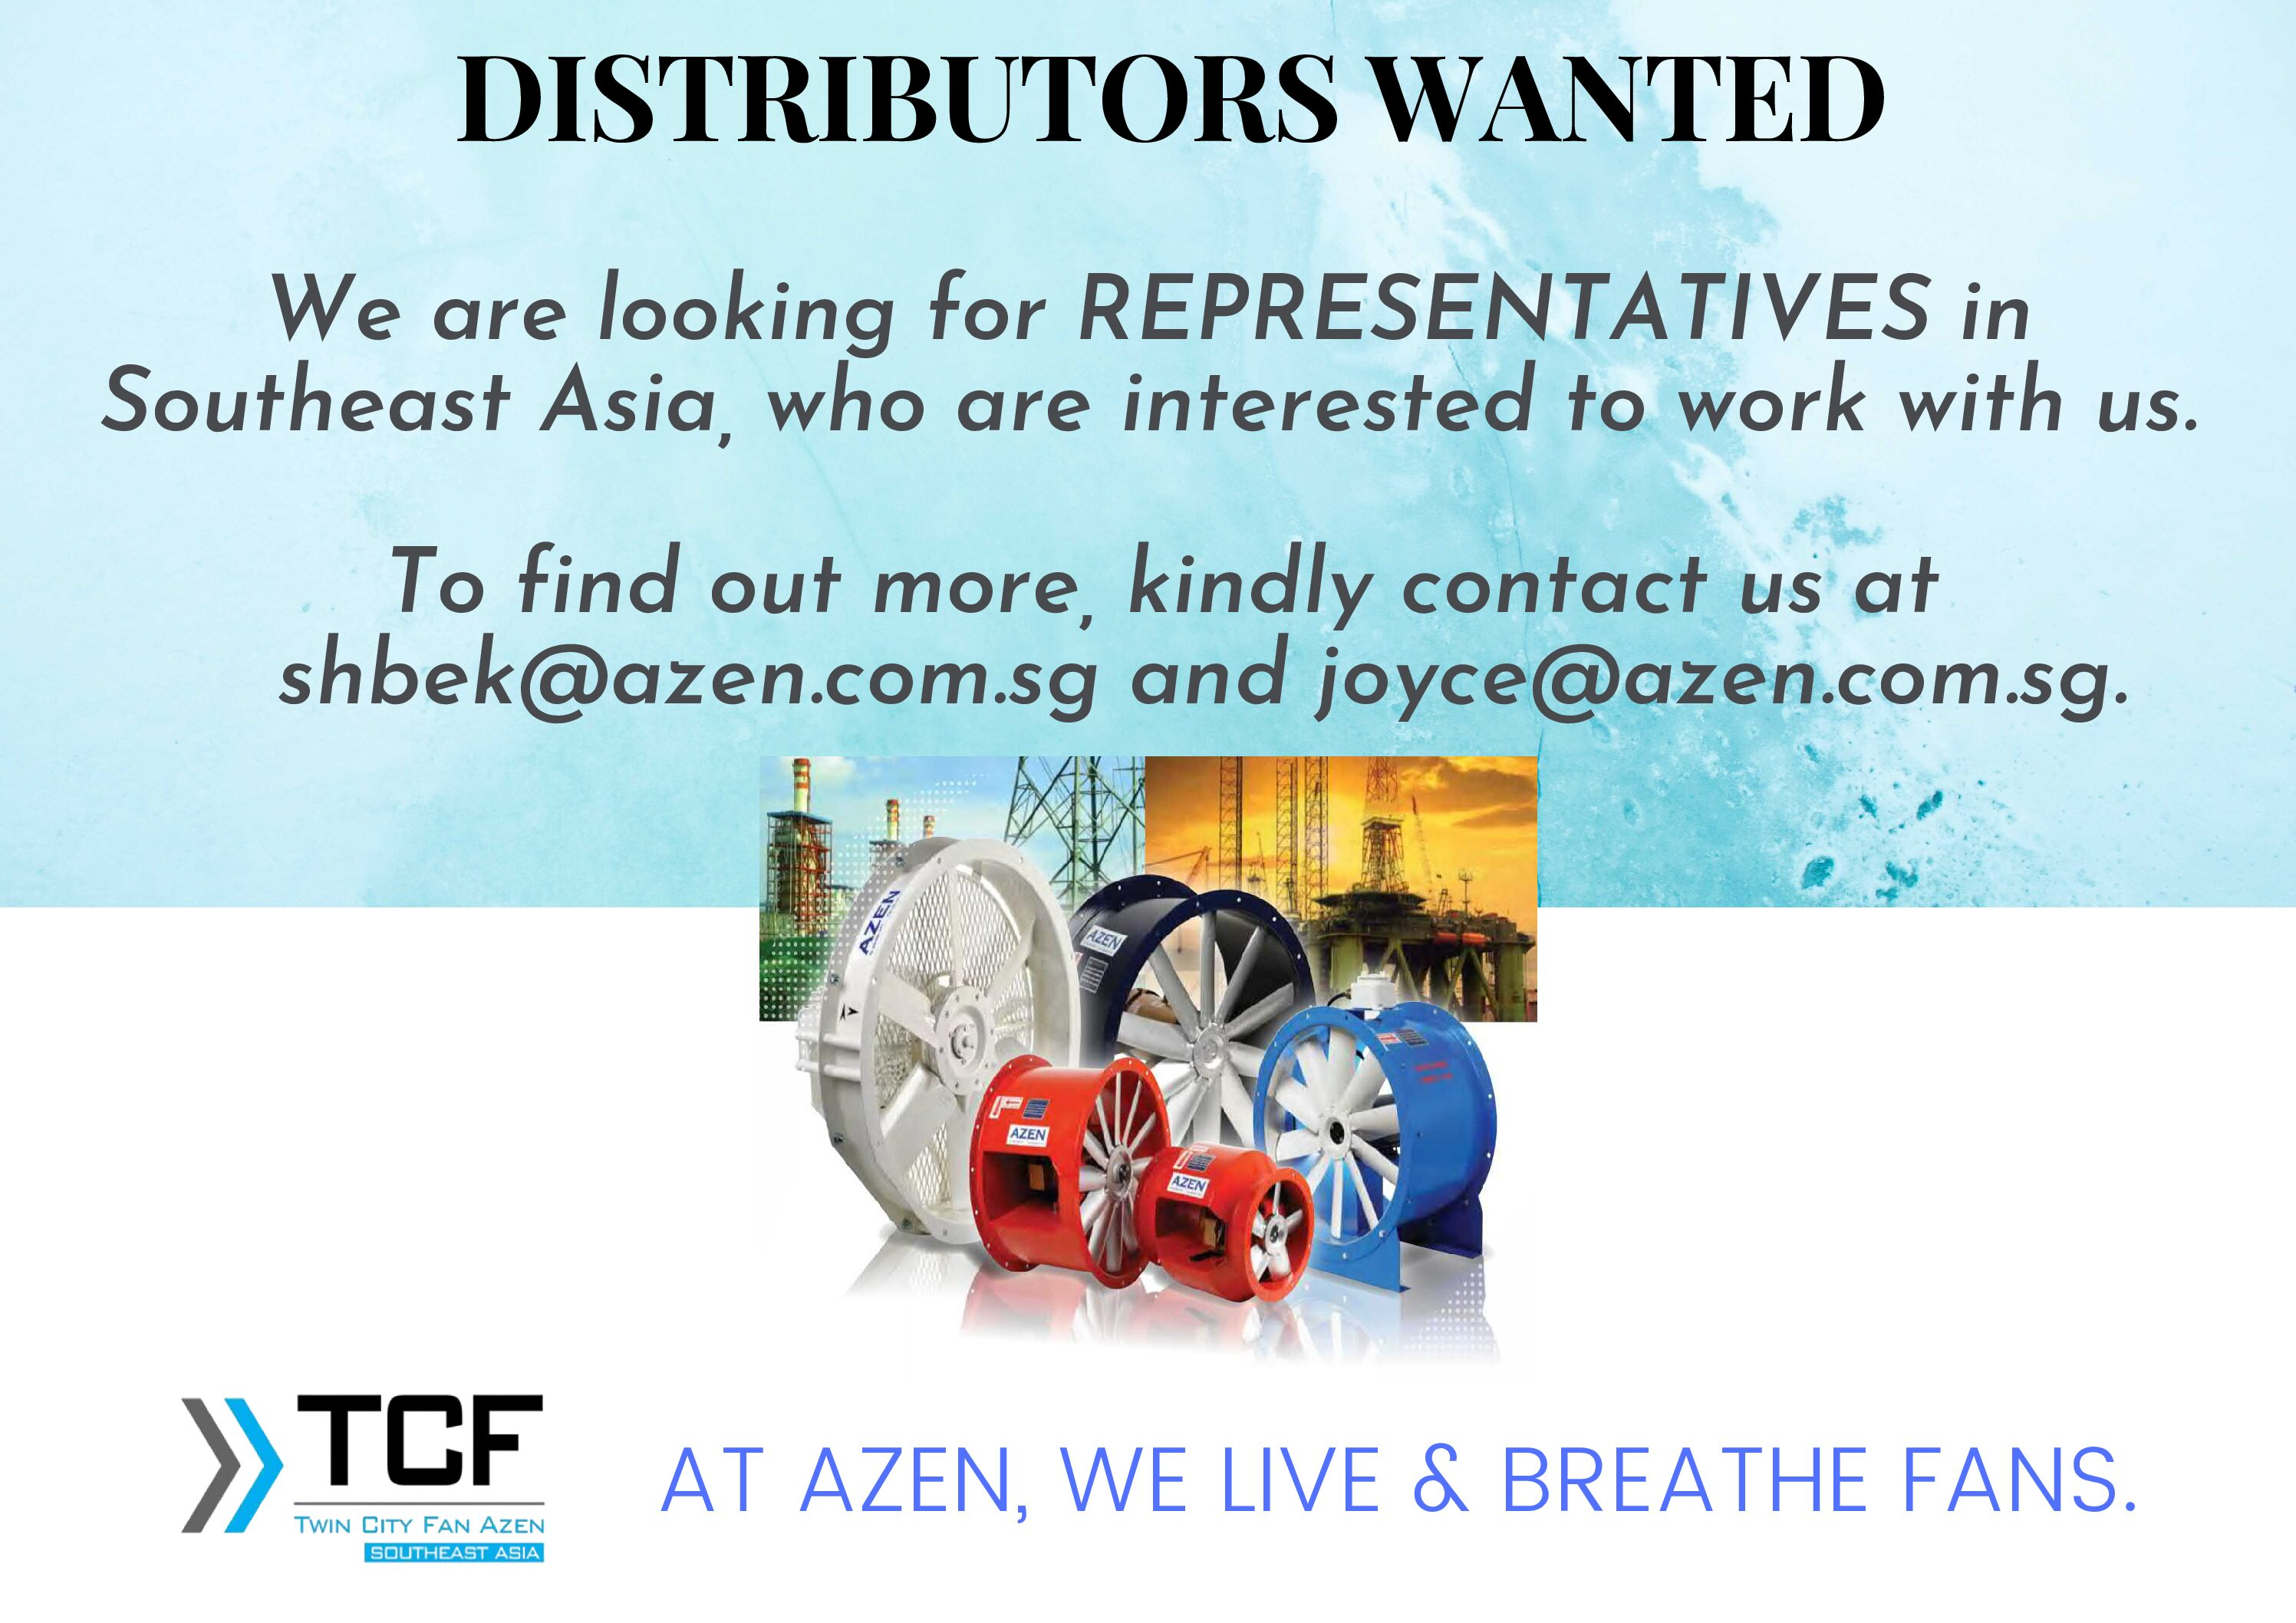 Looking for Distributors in Southeast Asia